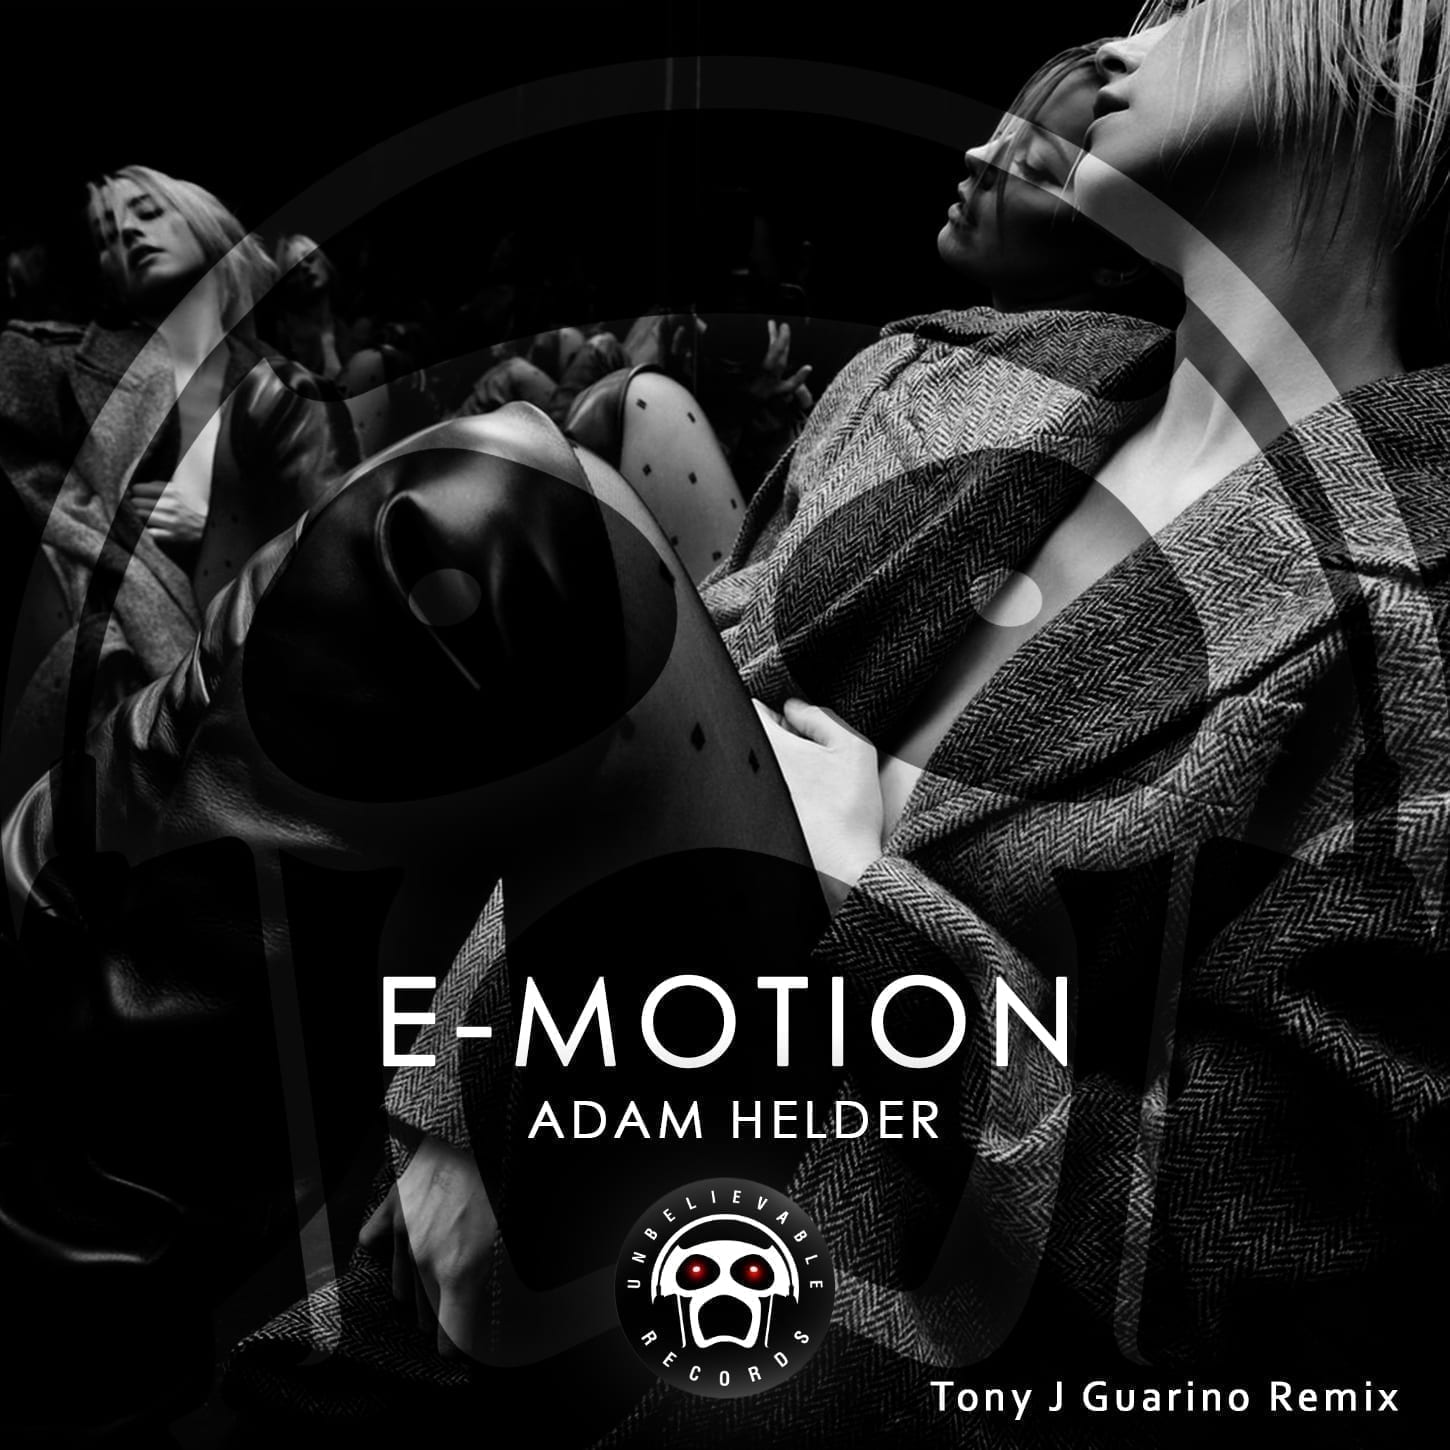 """Adam Helder presents a new single titled """"E-motion"""" on Unbelievable Records"""